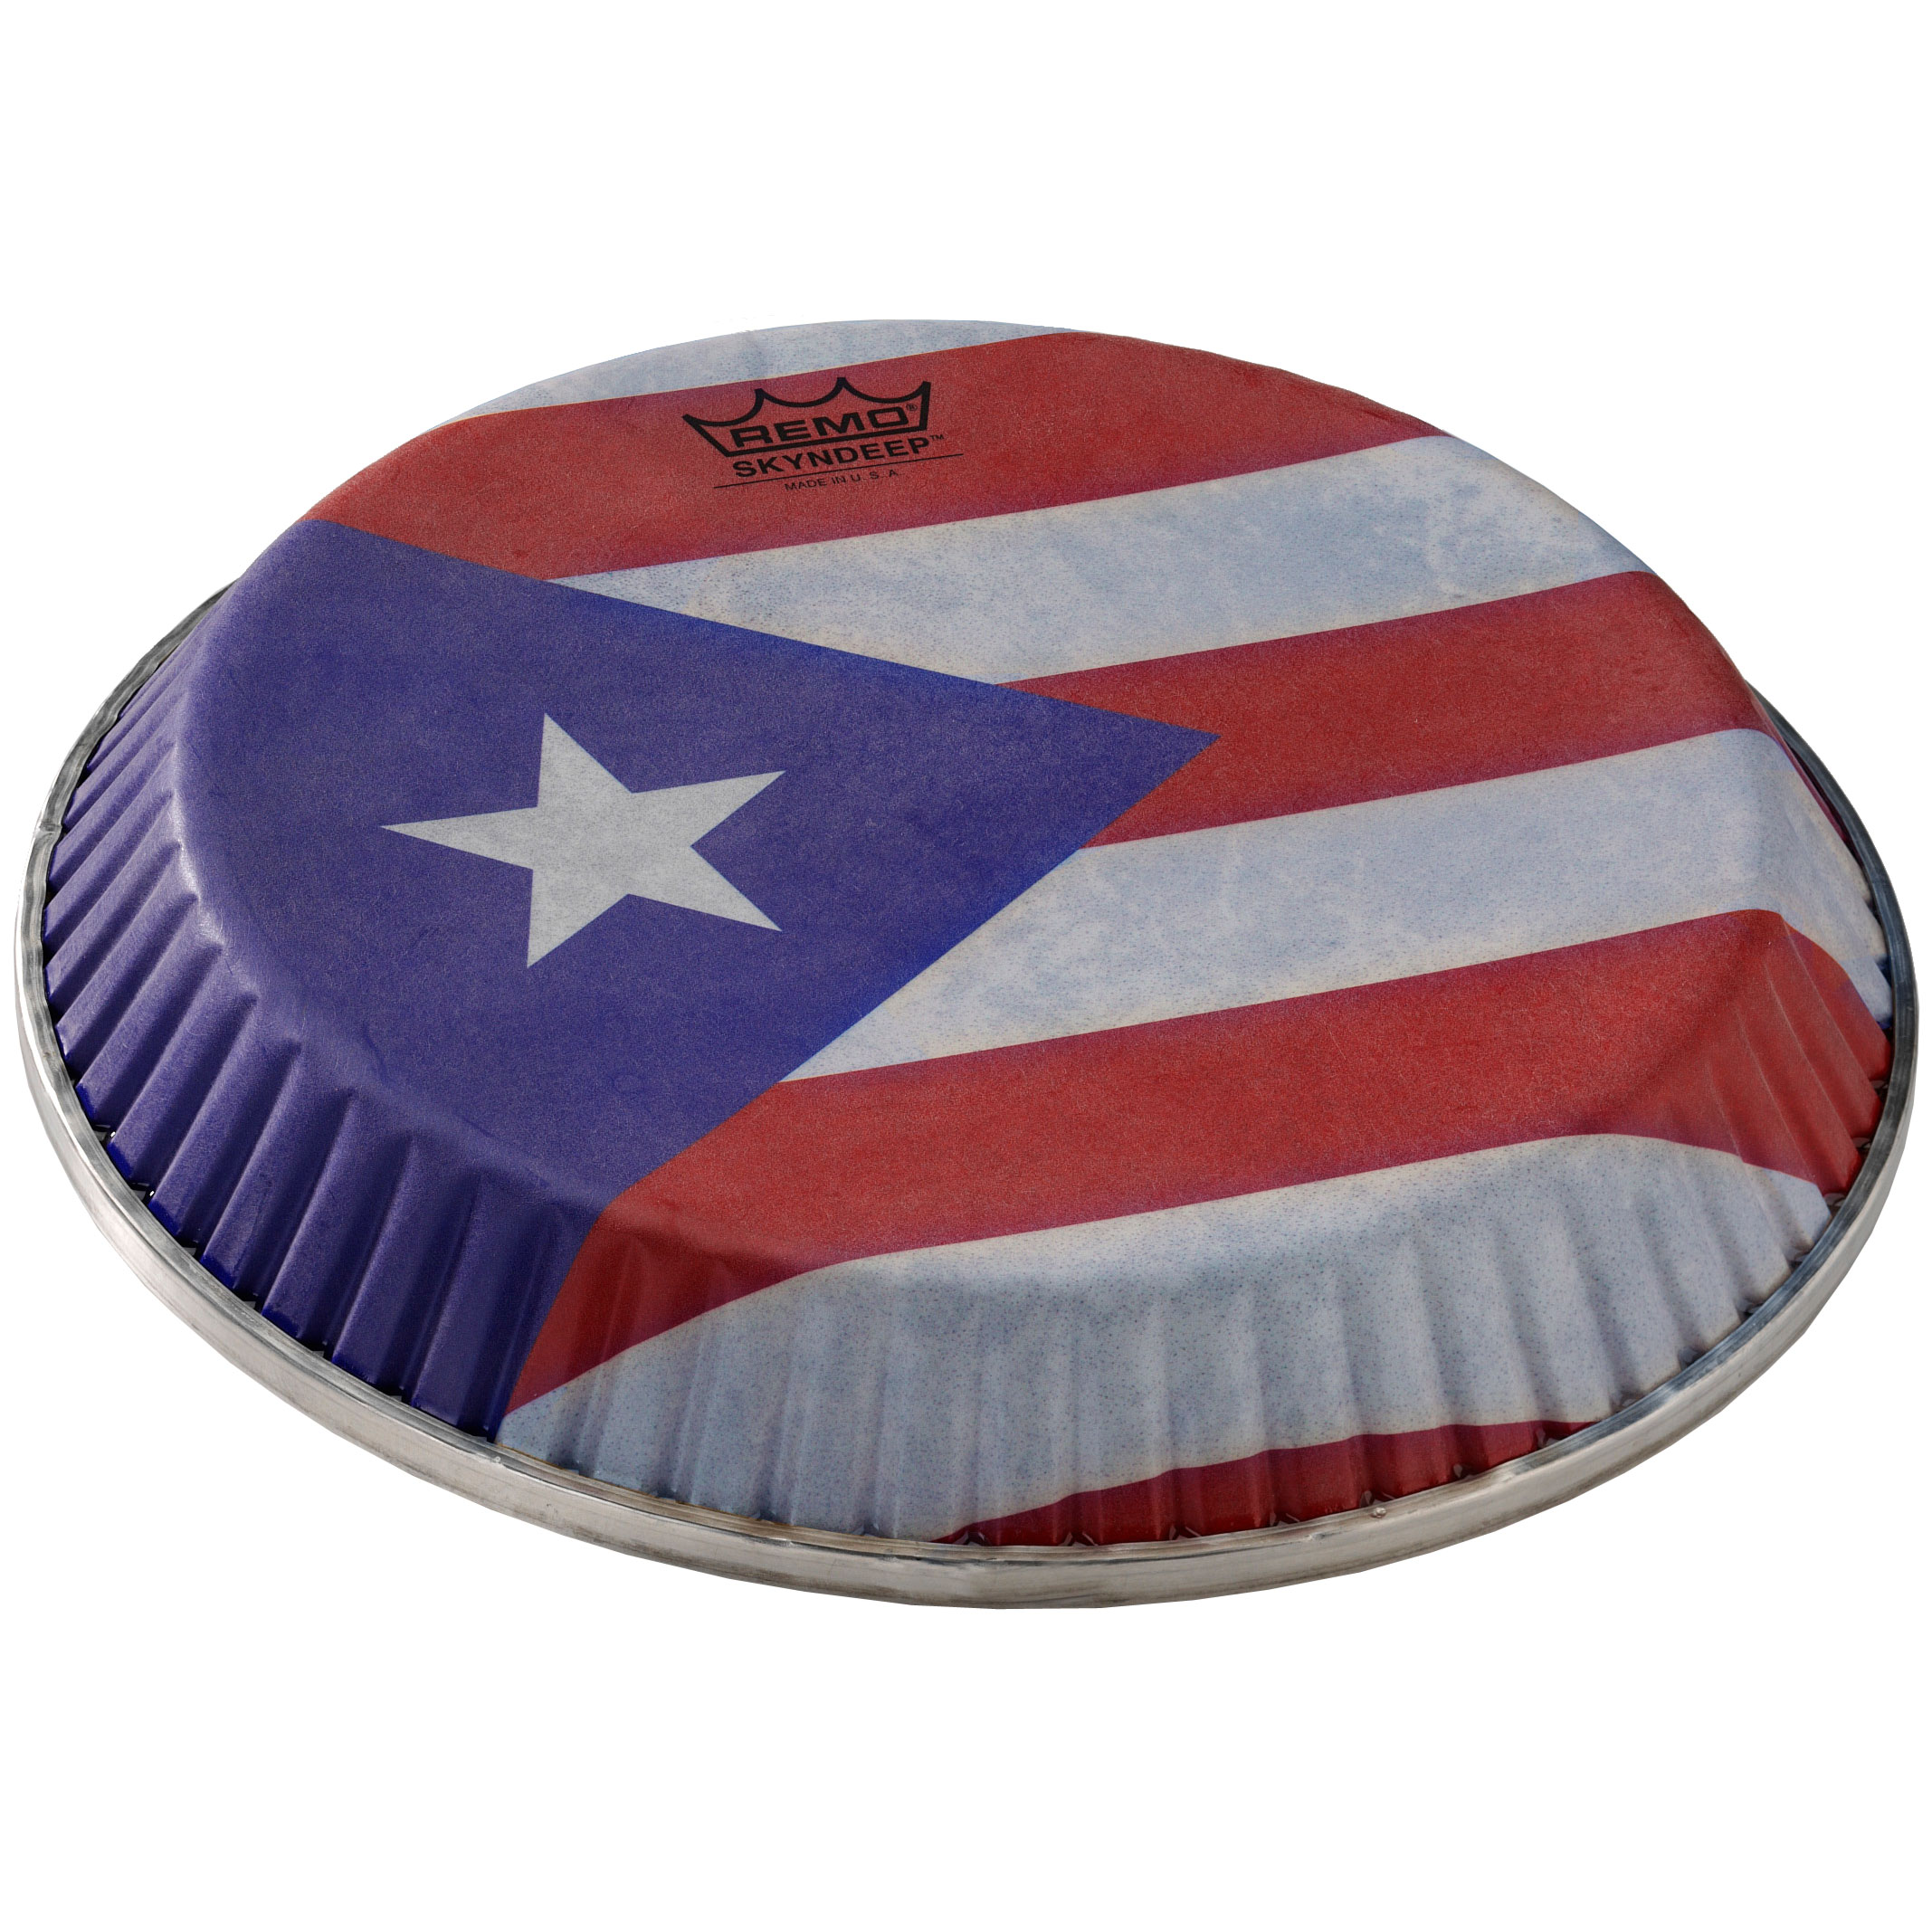 "Remo 12.5"" Symmetry Skyndeep Conga Drum Head (D1 Collar) with Puerto Rican Flag Graphic"